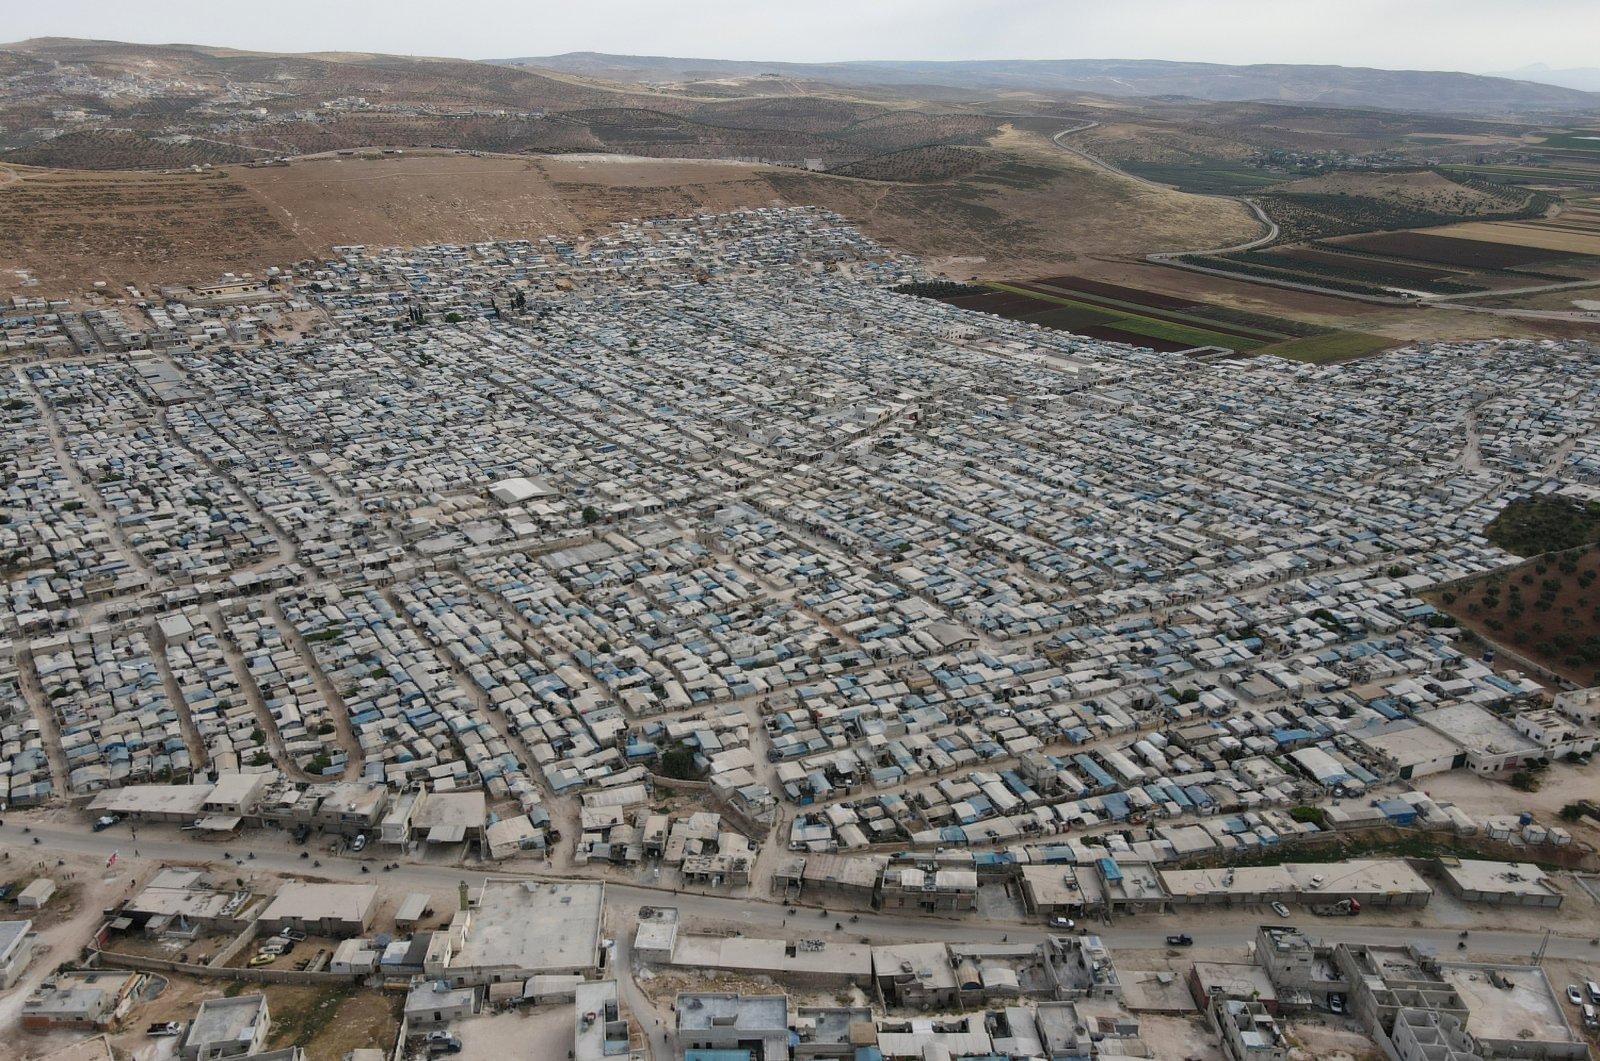 A general view shows al-Karameh camp for internally displaced Syrians, in Idlib, Syria, May 21, 2021. (Reuters Photo)